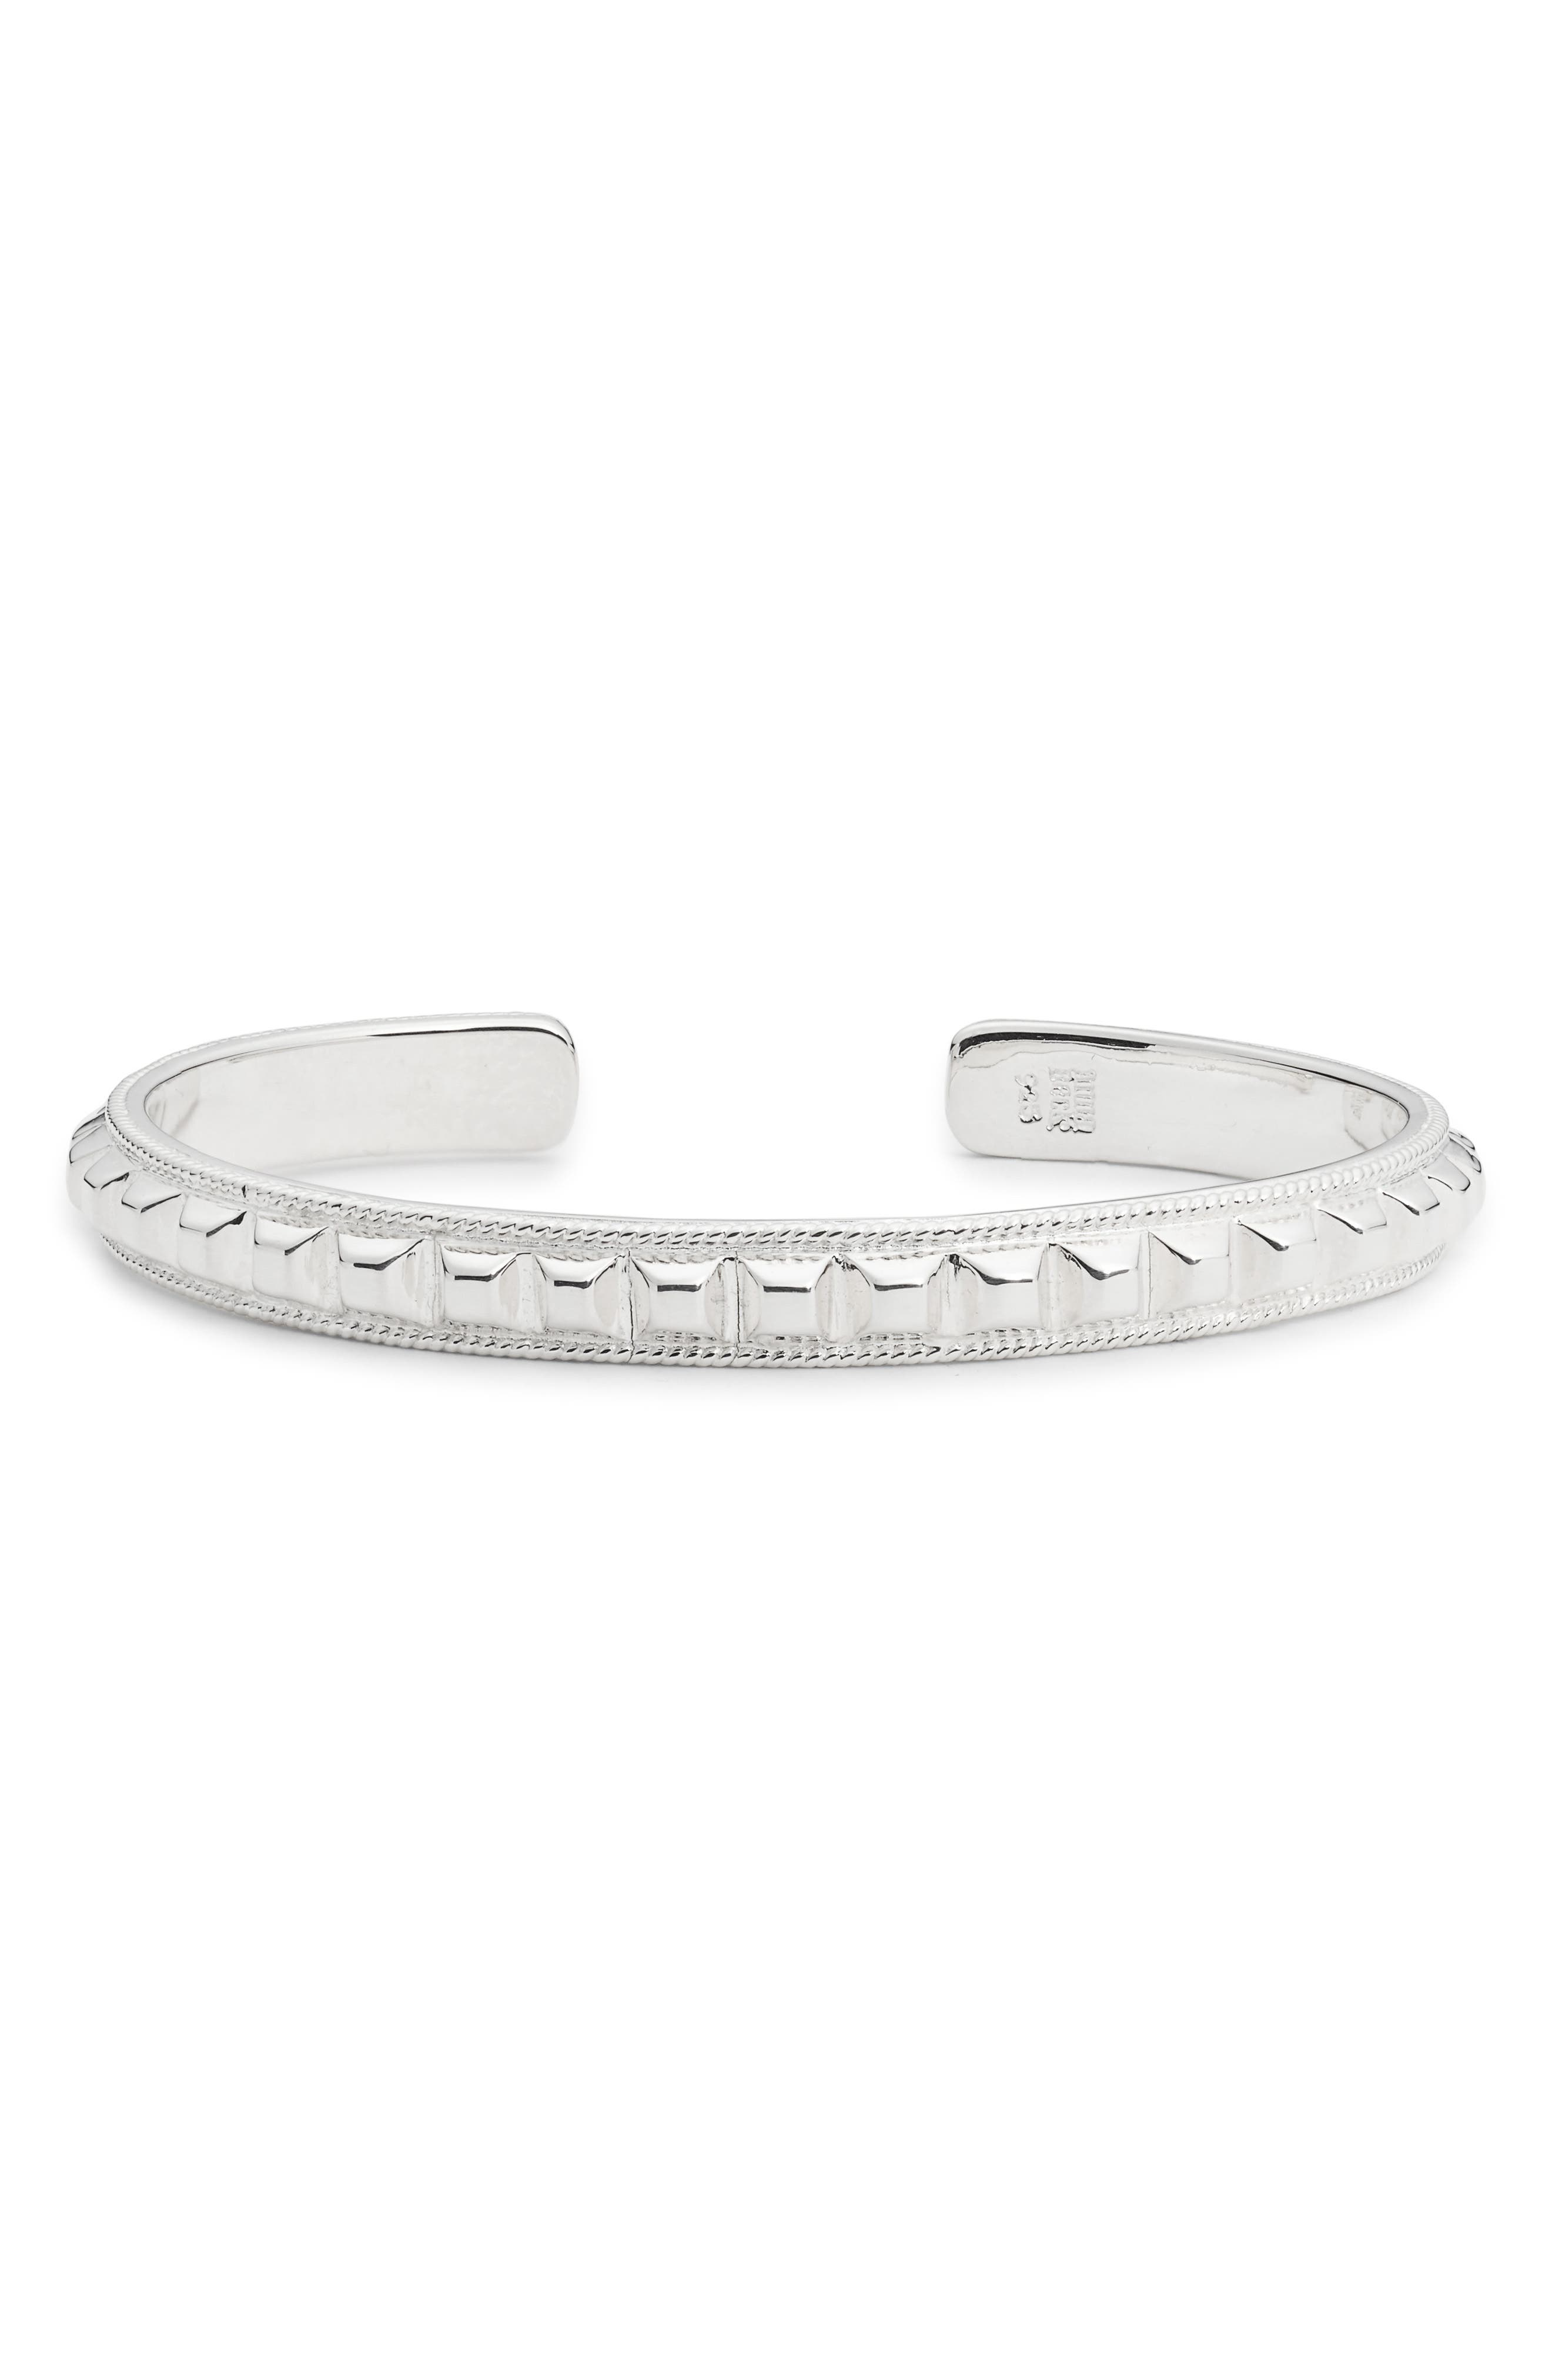 ANNA BECK Studded Skinny Cuff in Silver